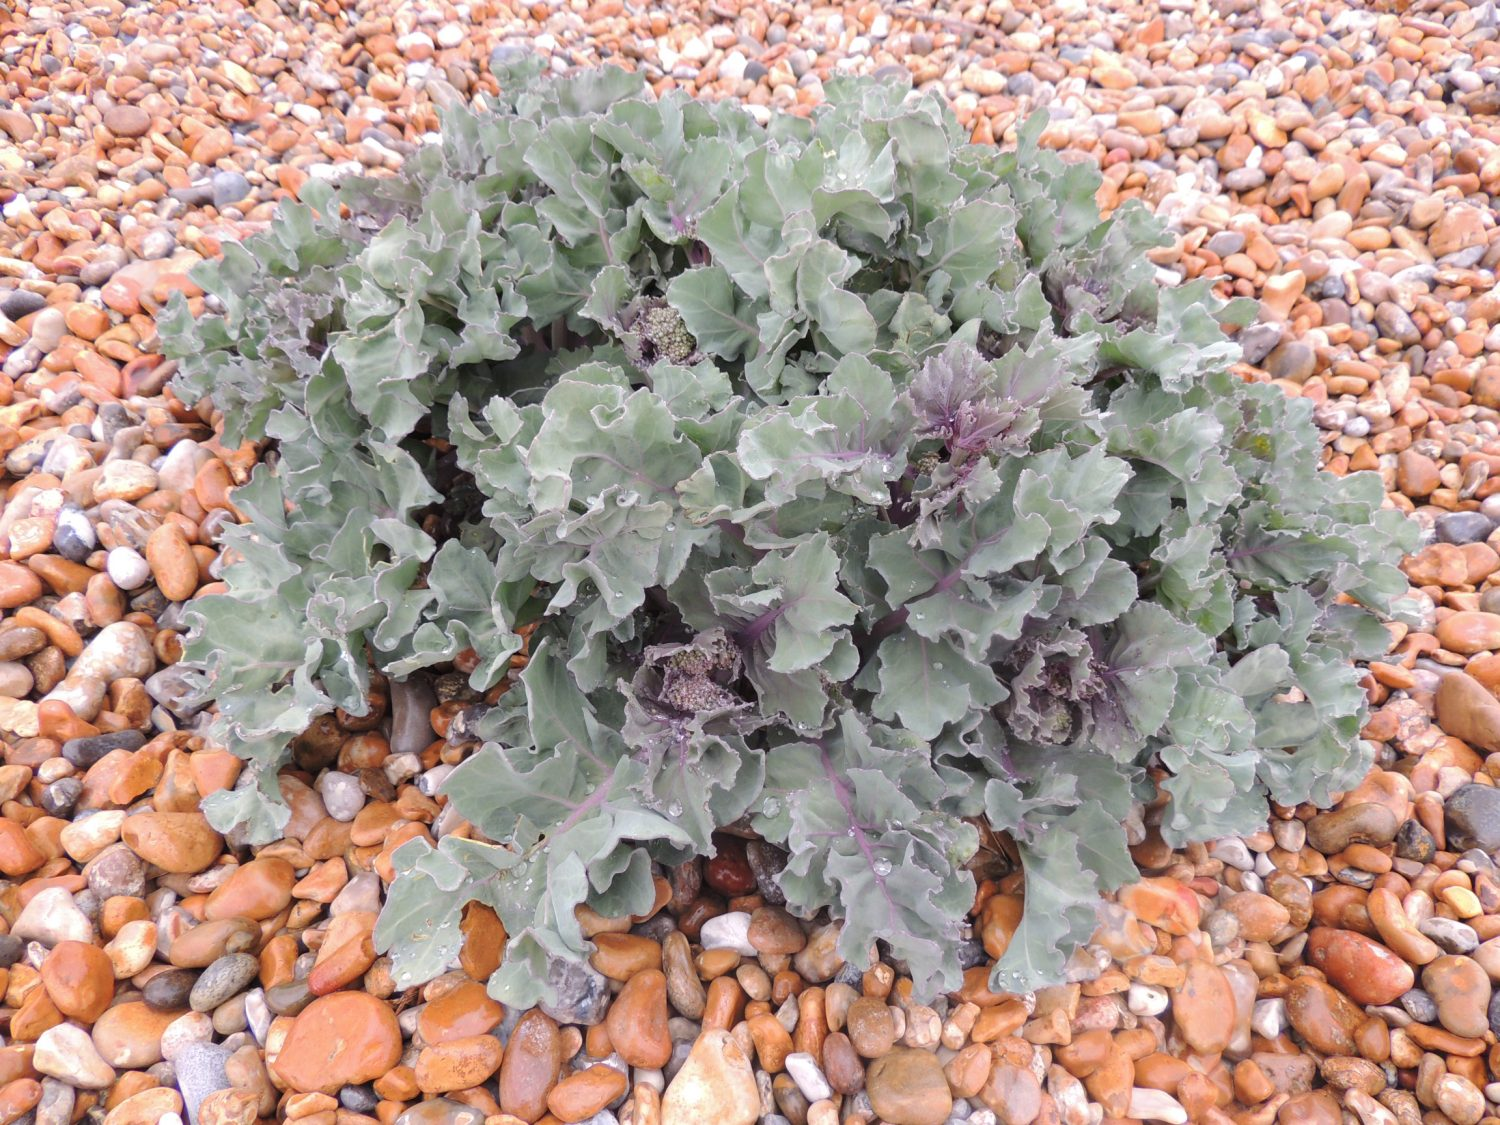 Sea kale is edible and people used to blanch it in the same way you would rhubarb, but by piling the shingle over it